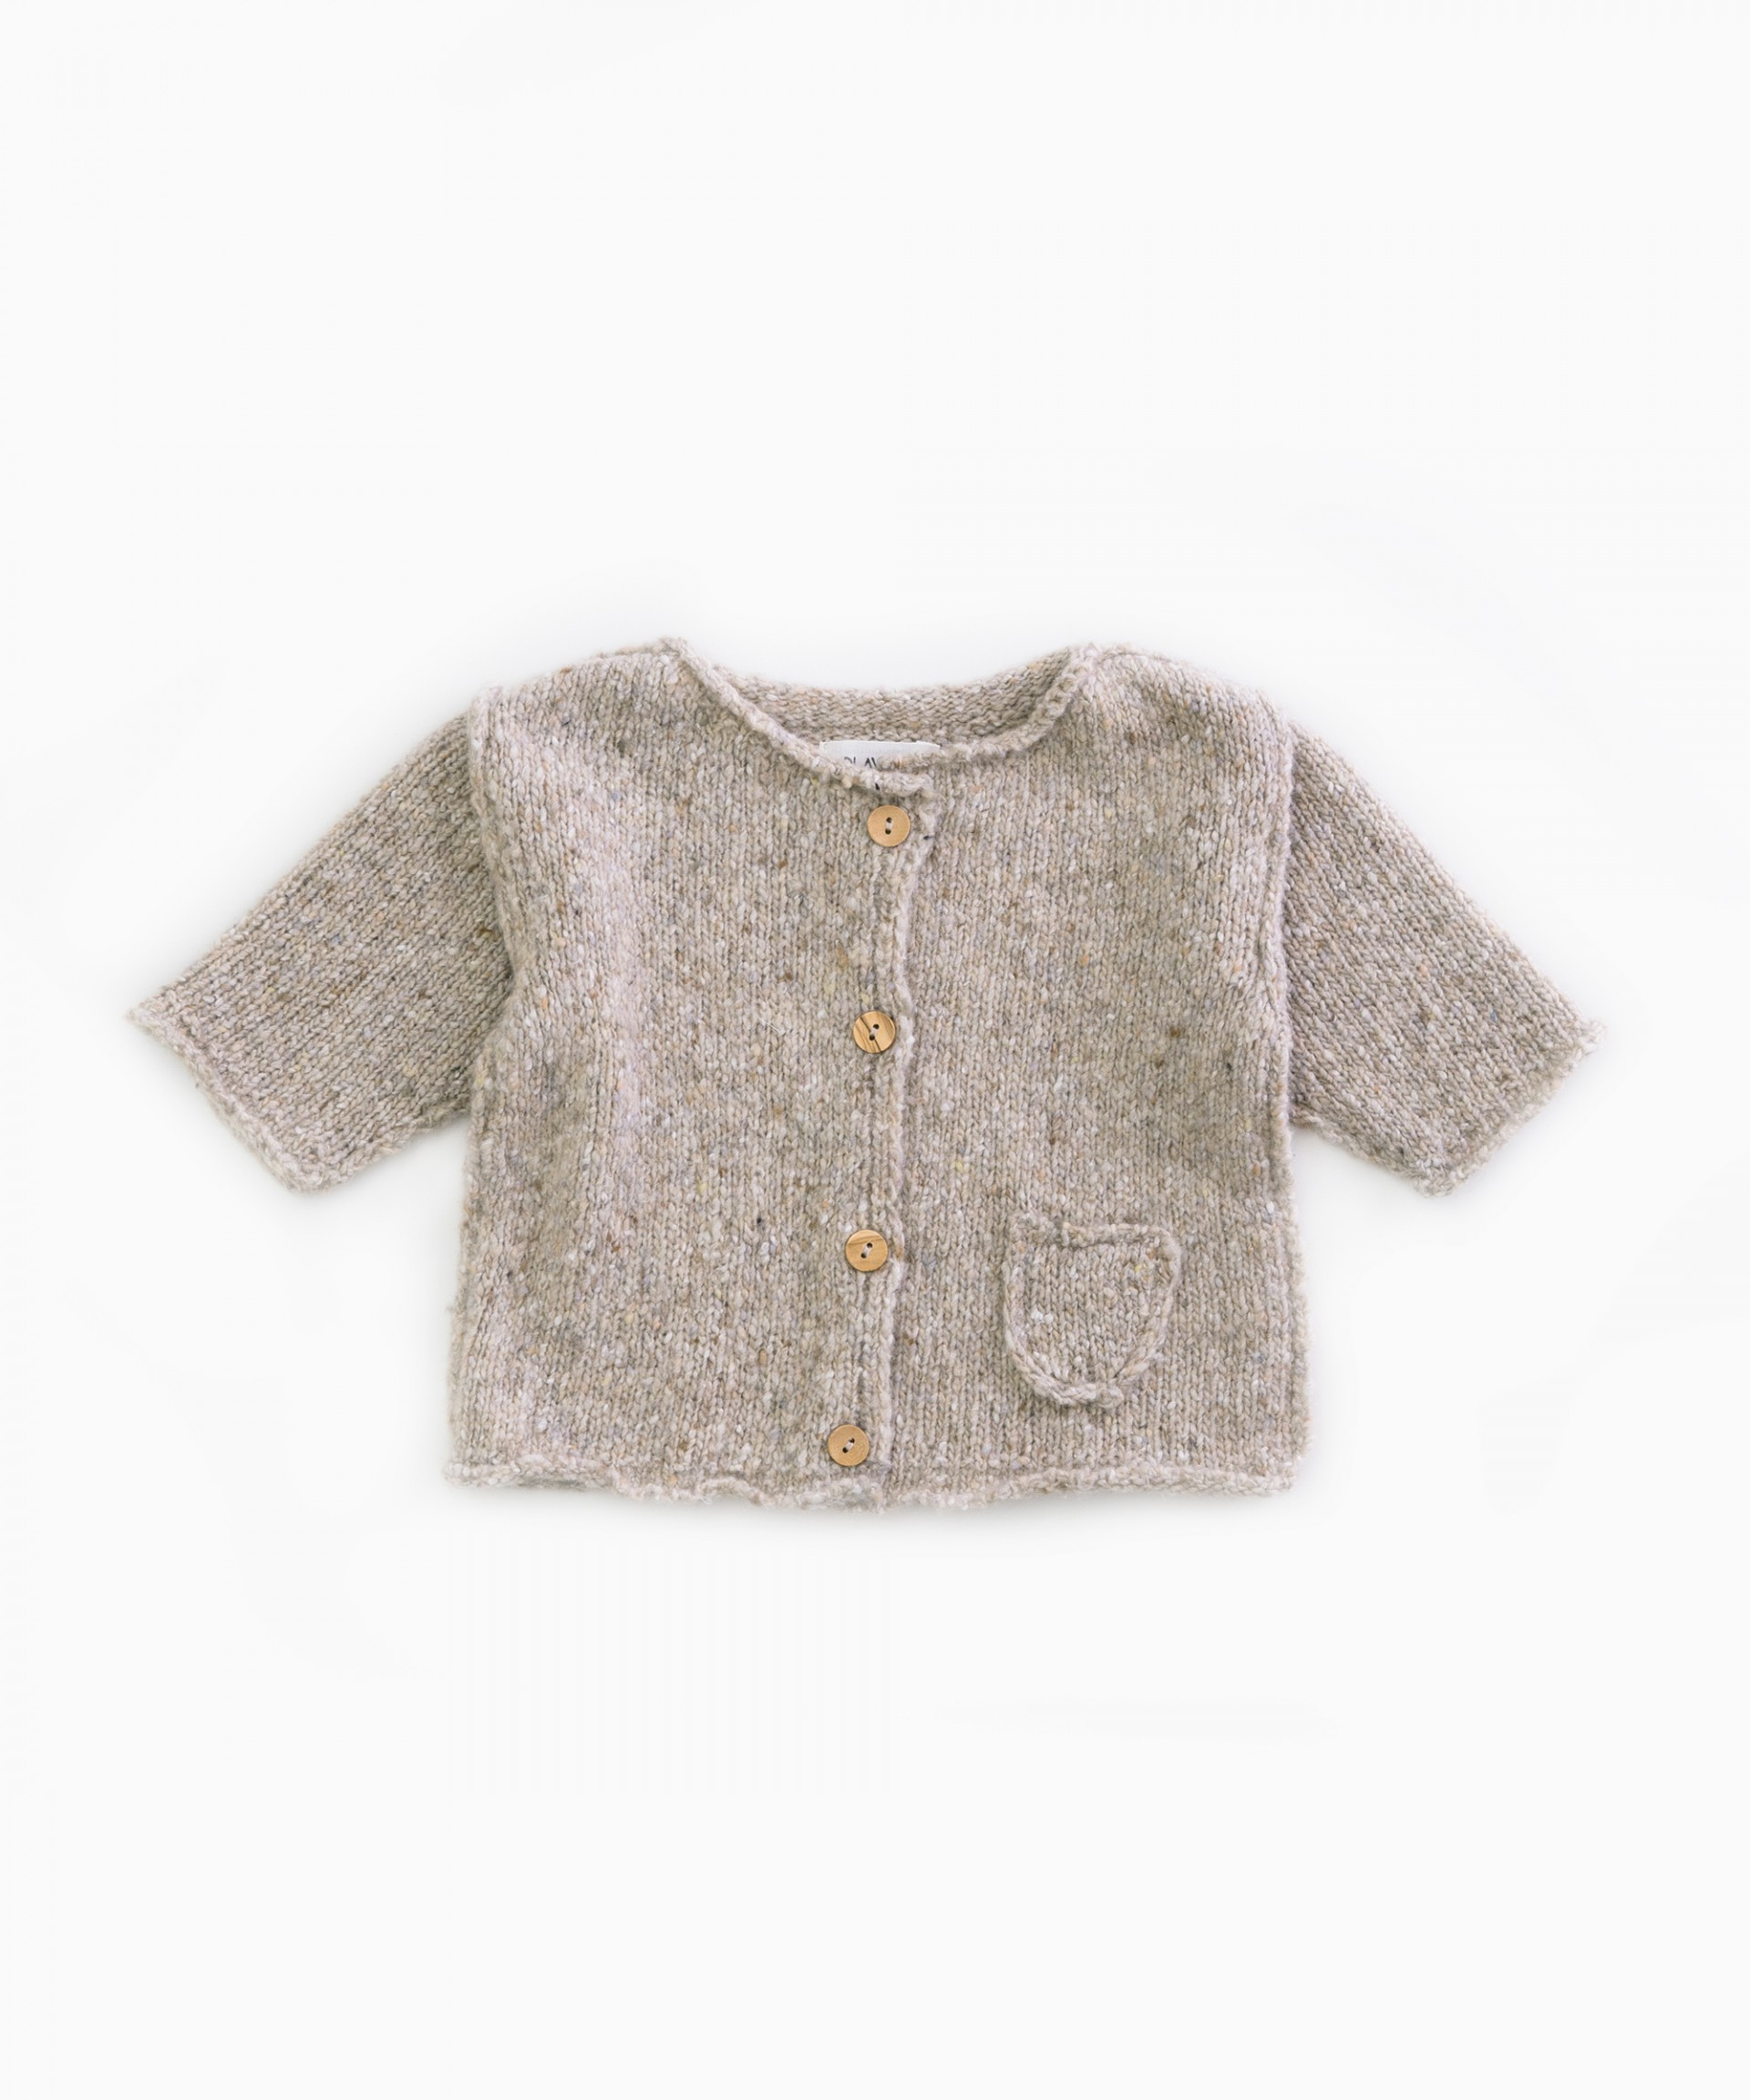 Knitted jacket with a pocket | Woodwork